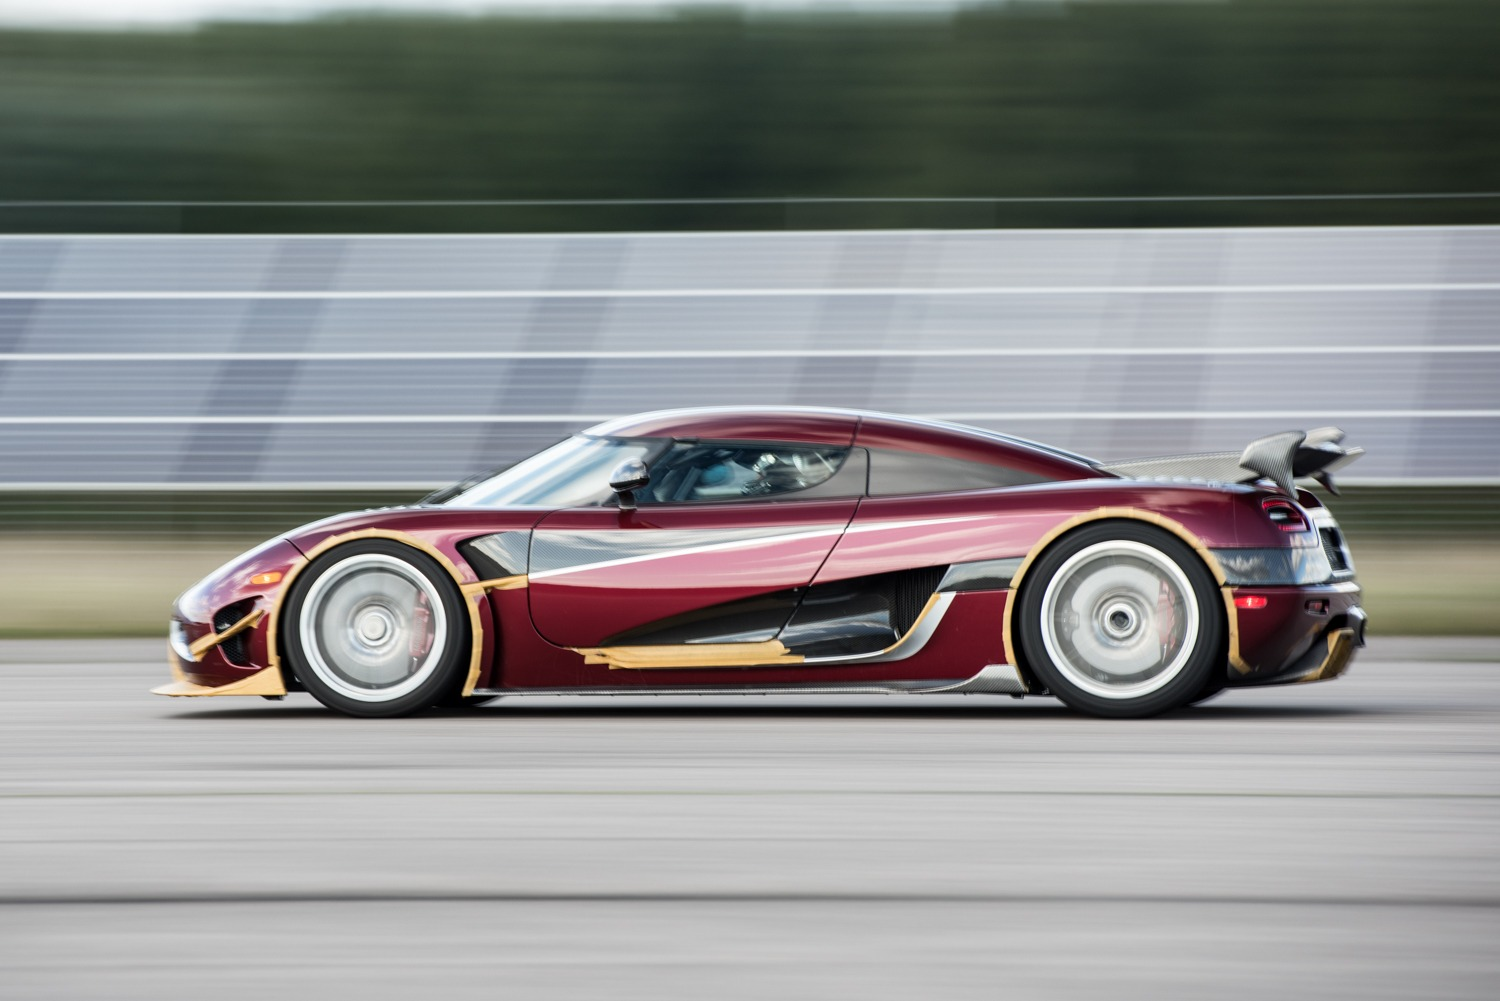 Koenigsegg Agera RS rekordno 0-400-0 km/h (video)